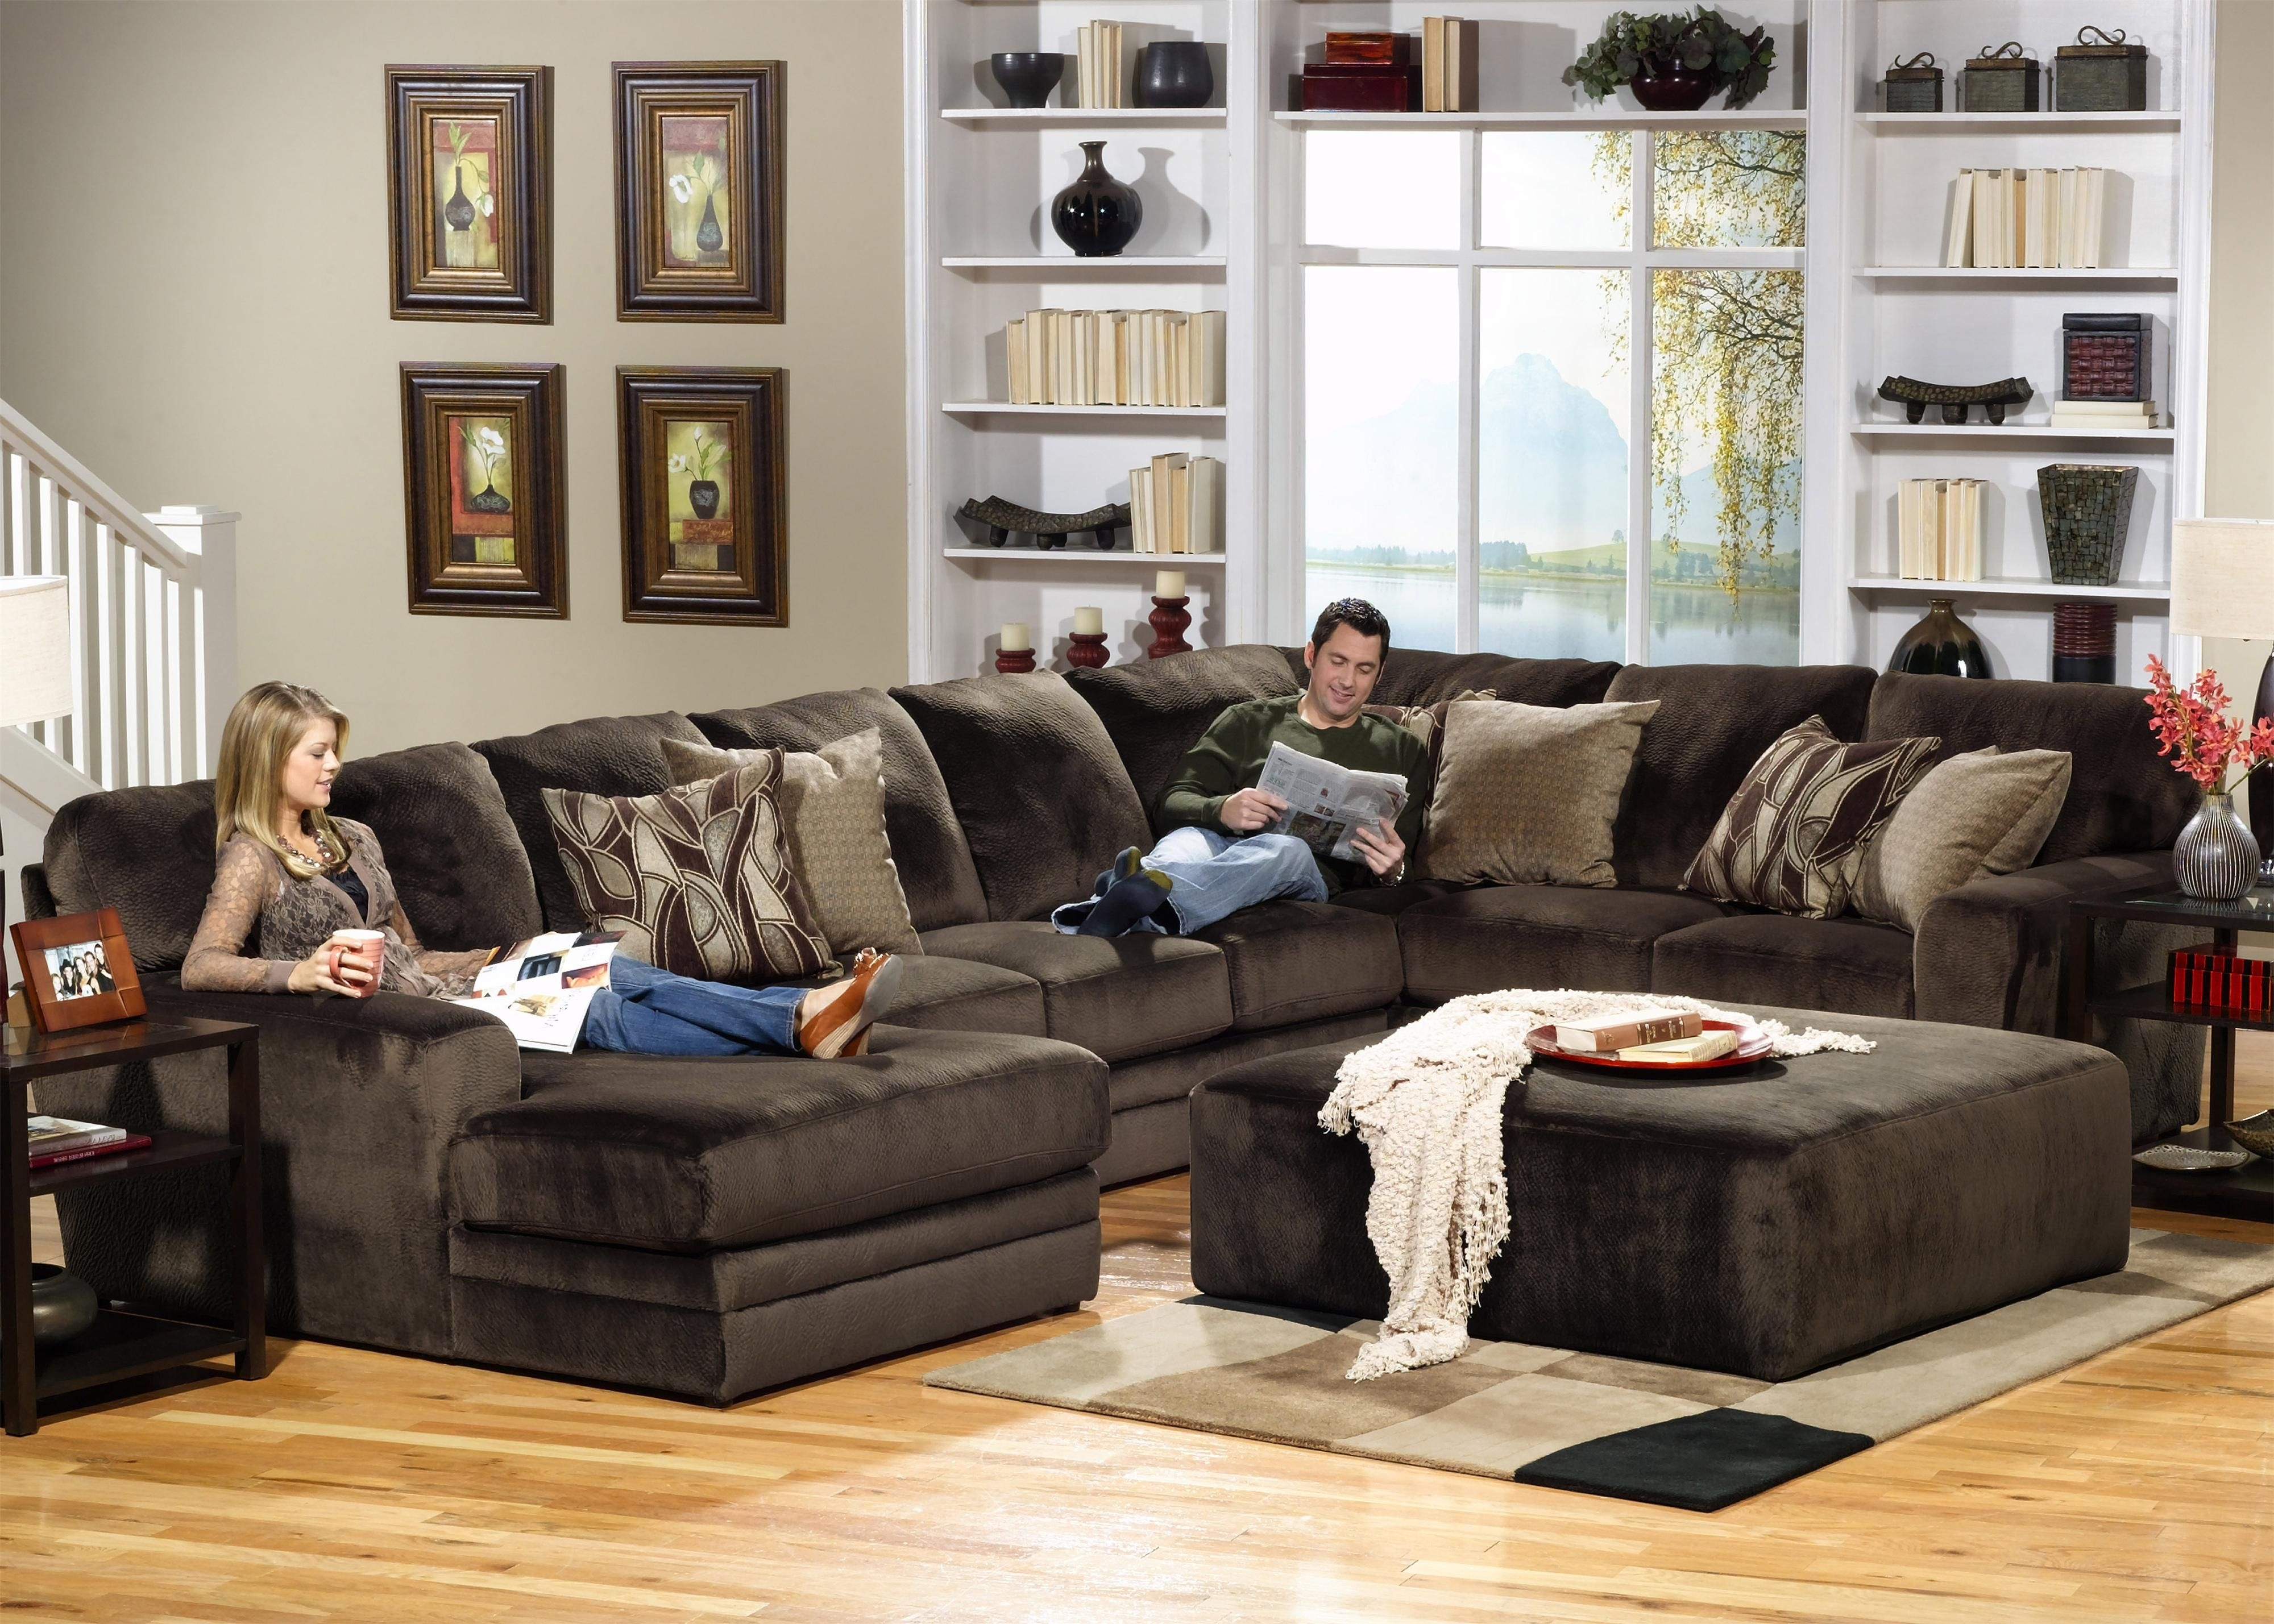 4377 Everest 3 Piece Sectional With Rsf Sectionjackson Furniture with Janesville Wi Sectional Sofas (Image 1 of 10)